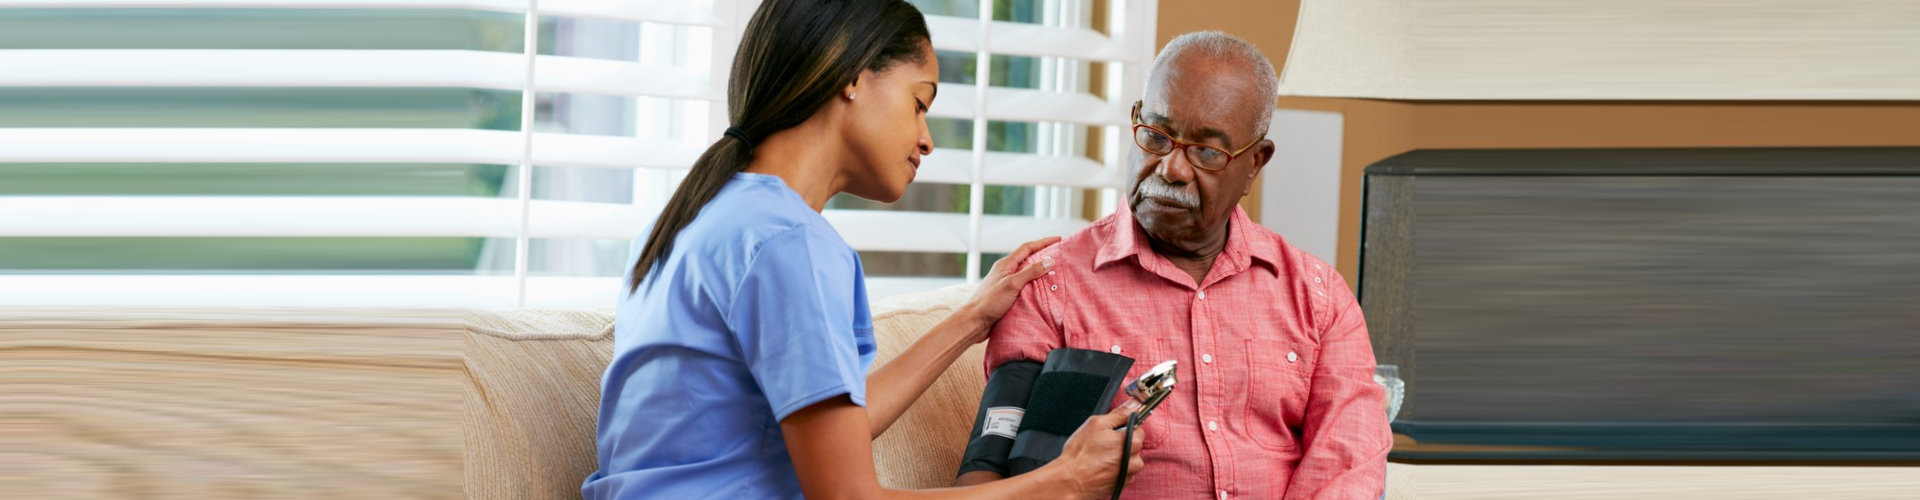 nurse checking senior man's blood pressure